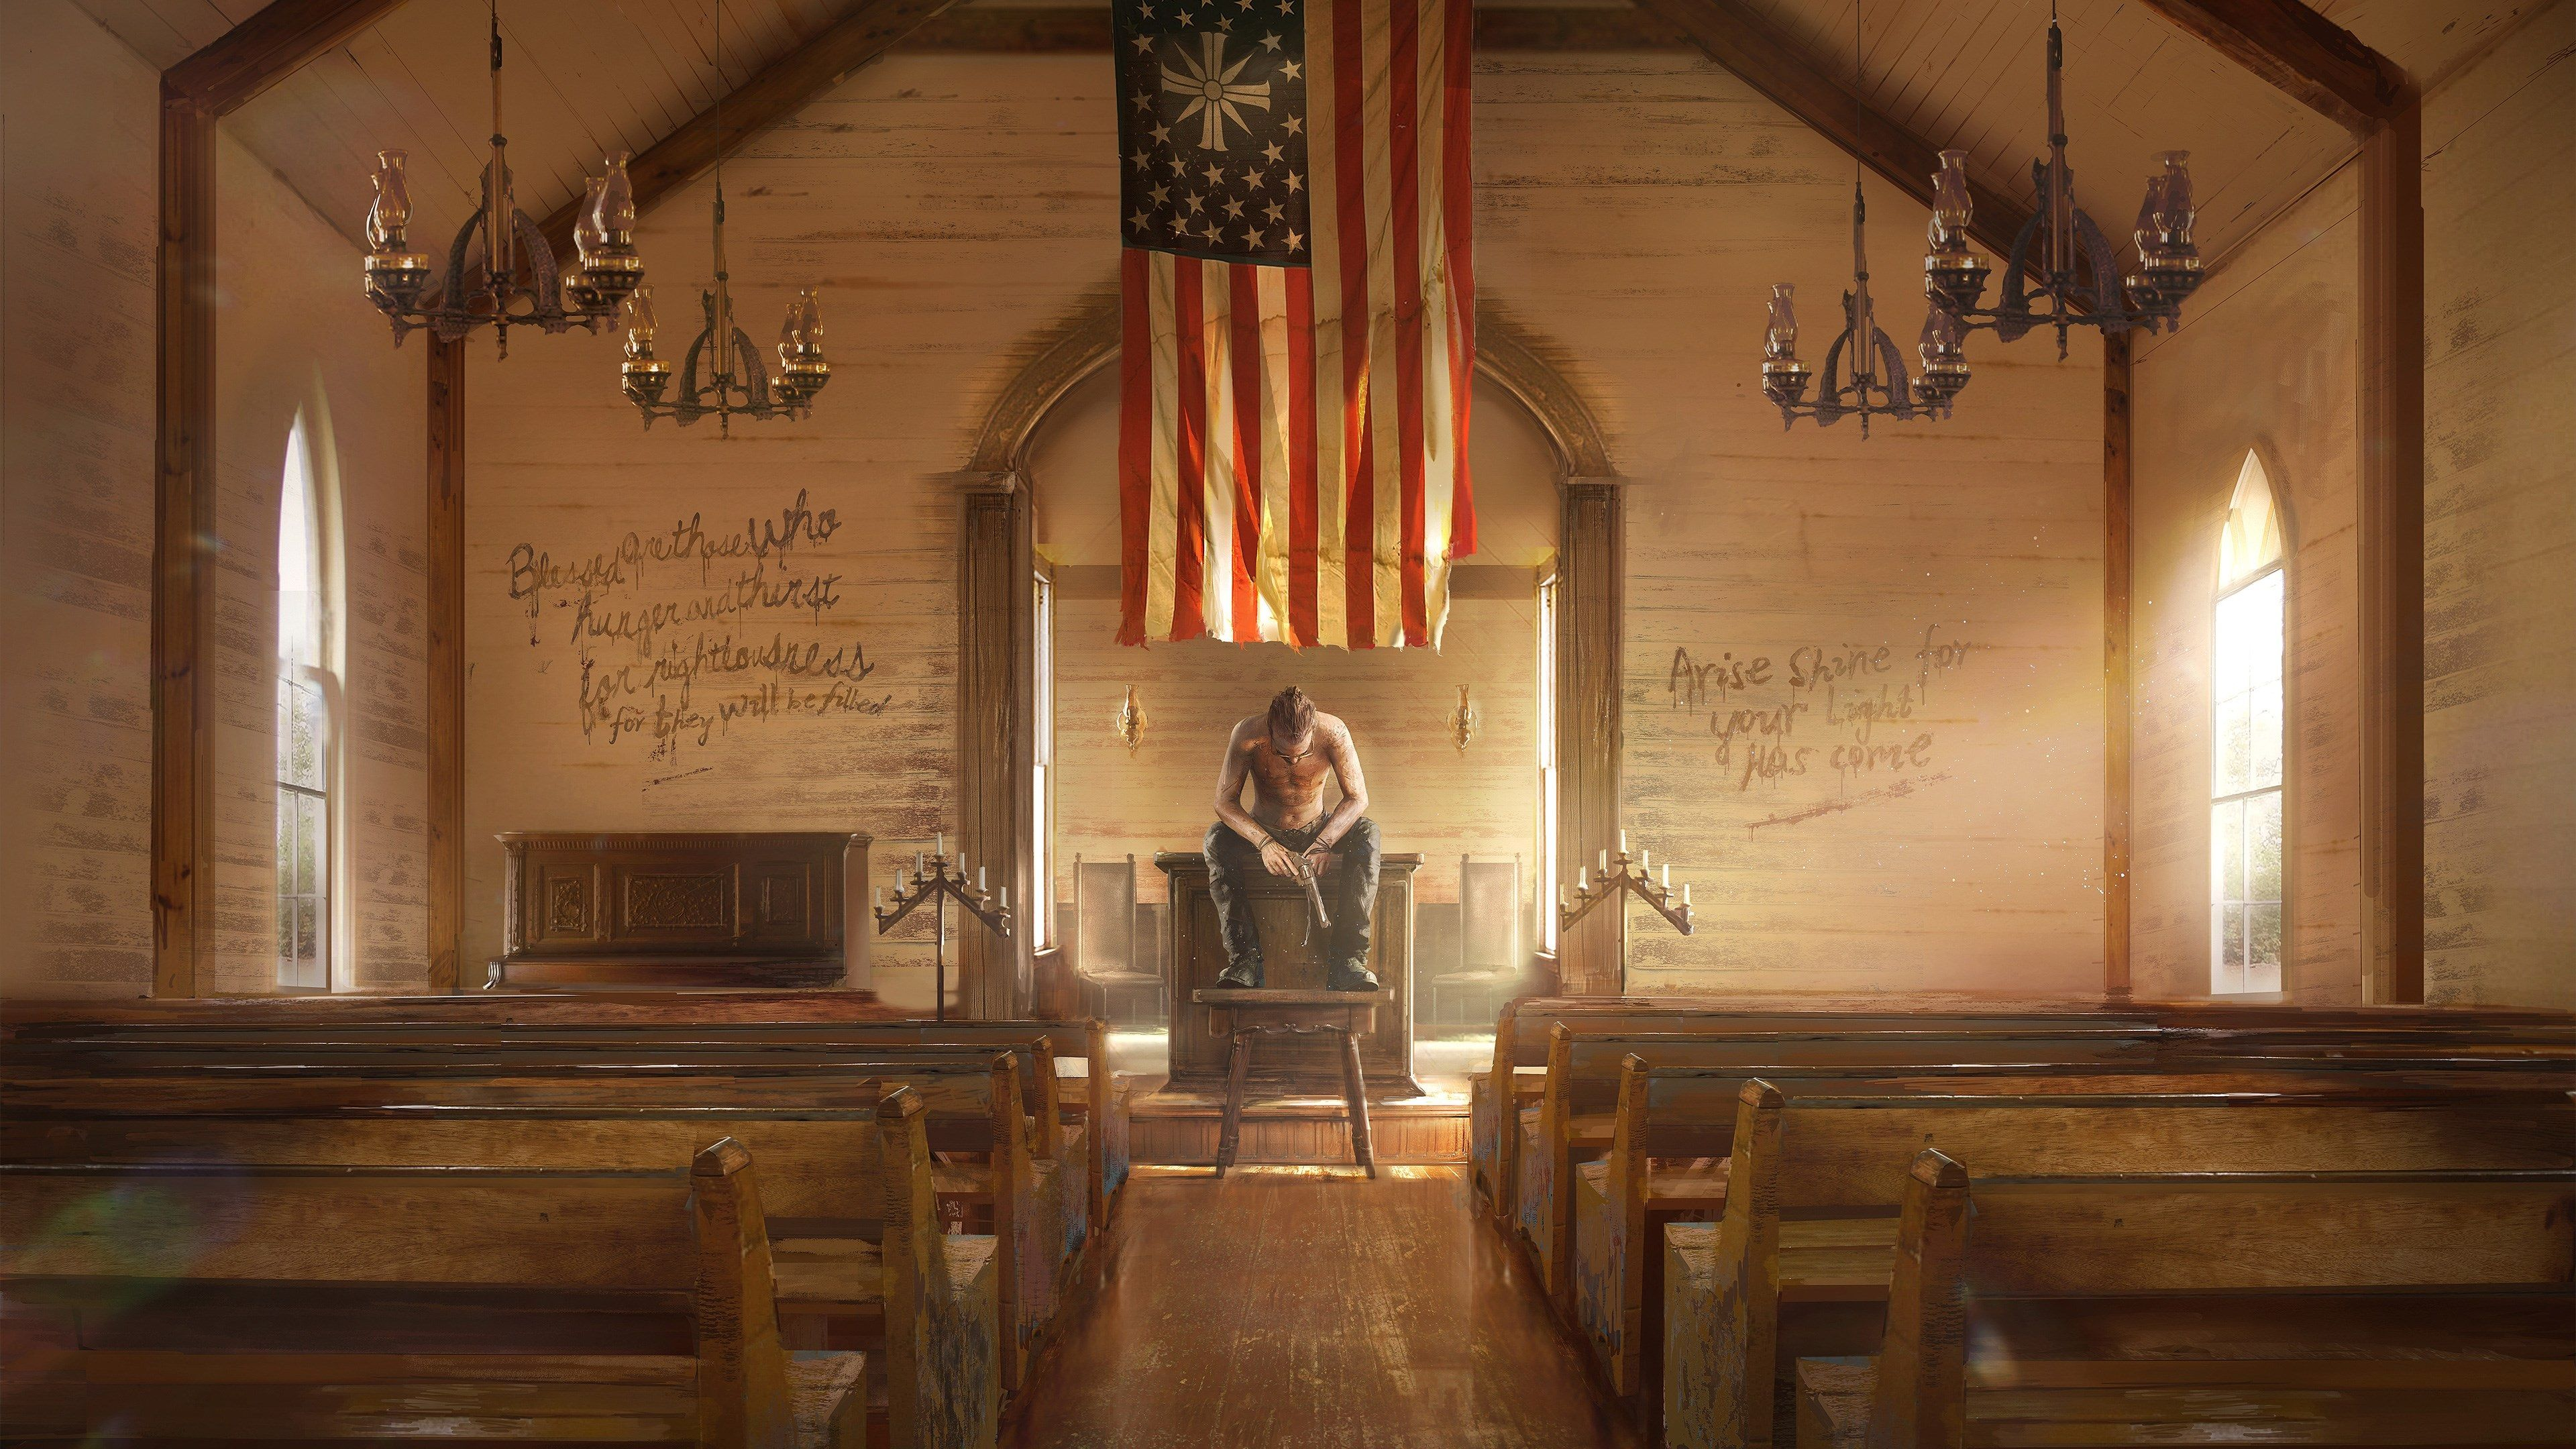 3840x2160 Far Cry 5 4k Computer Hd Wallpapers Free Download Hd Wallpaper 8k Wallpaper Wallpaper